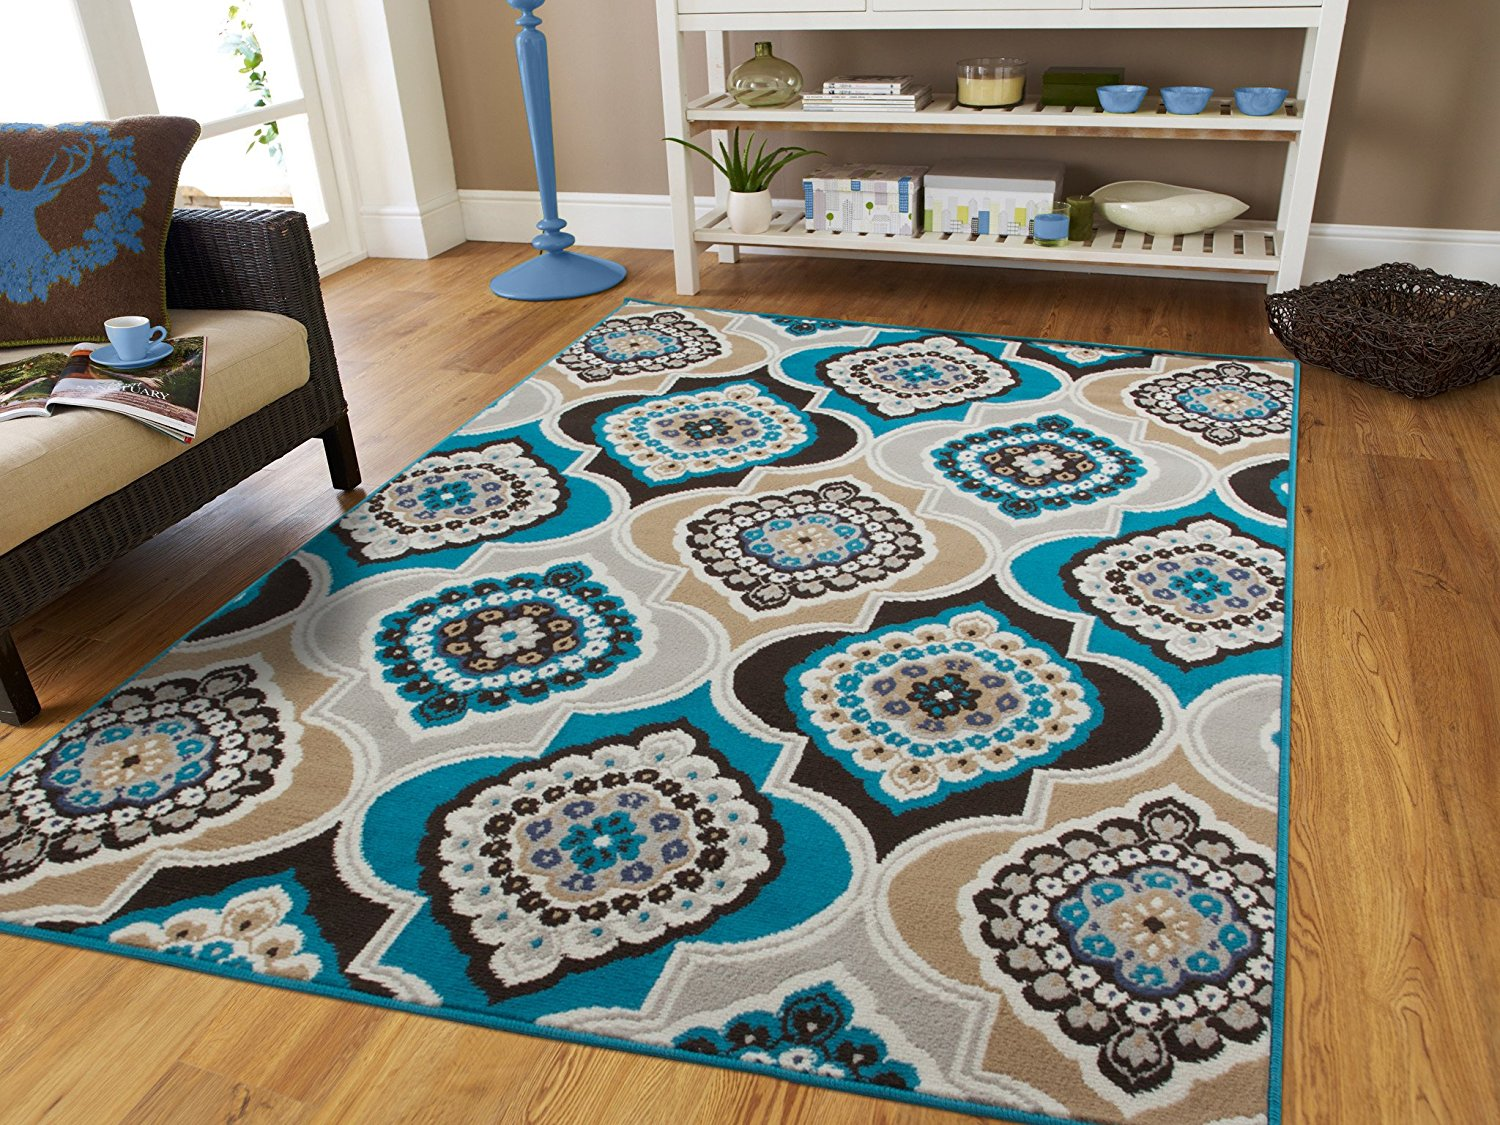 office rug. contemporary area rugs blue 5x8 on clearance 5x7 gray for living room office rug